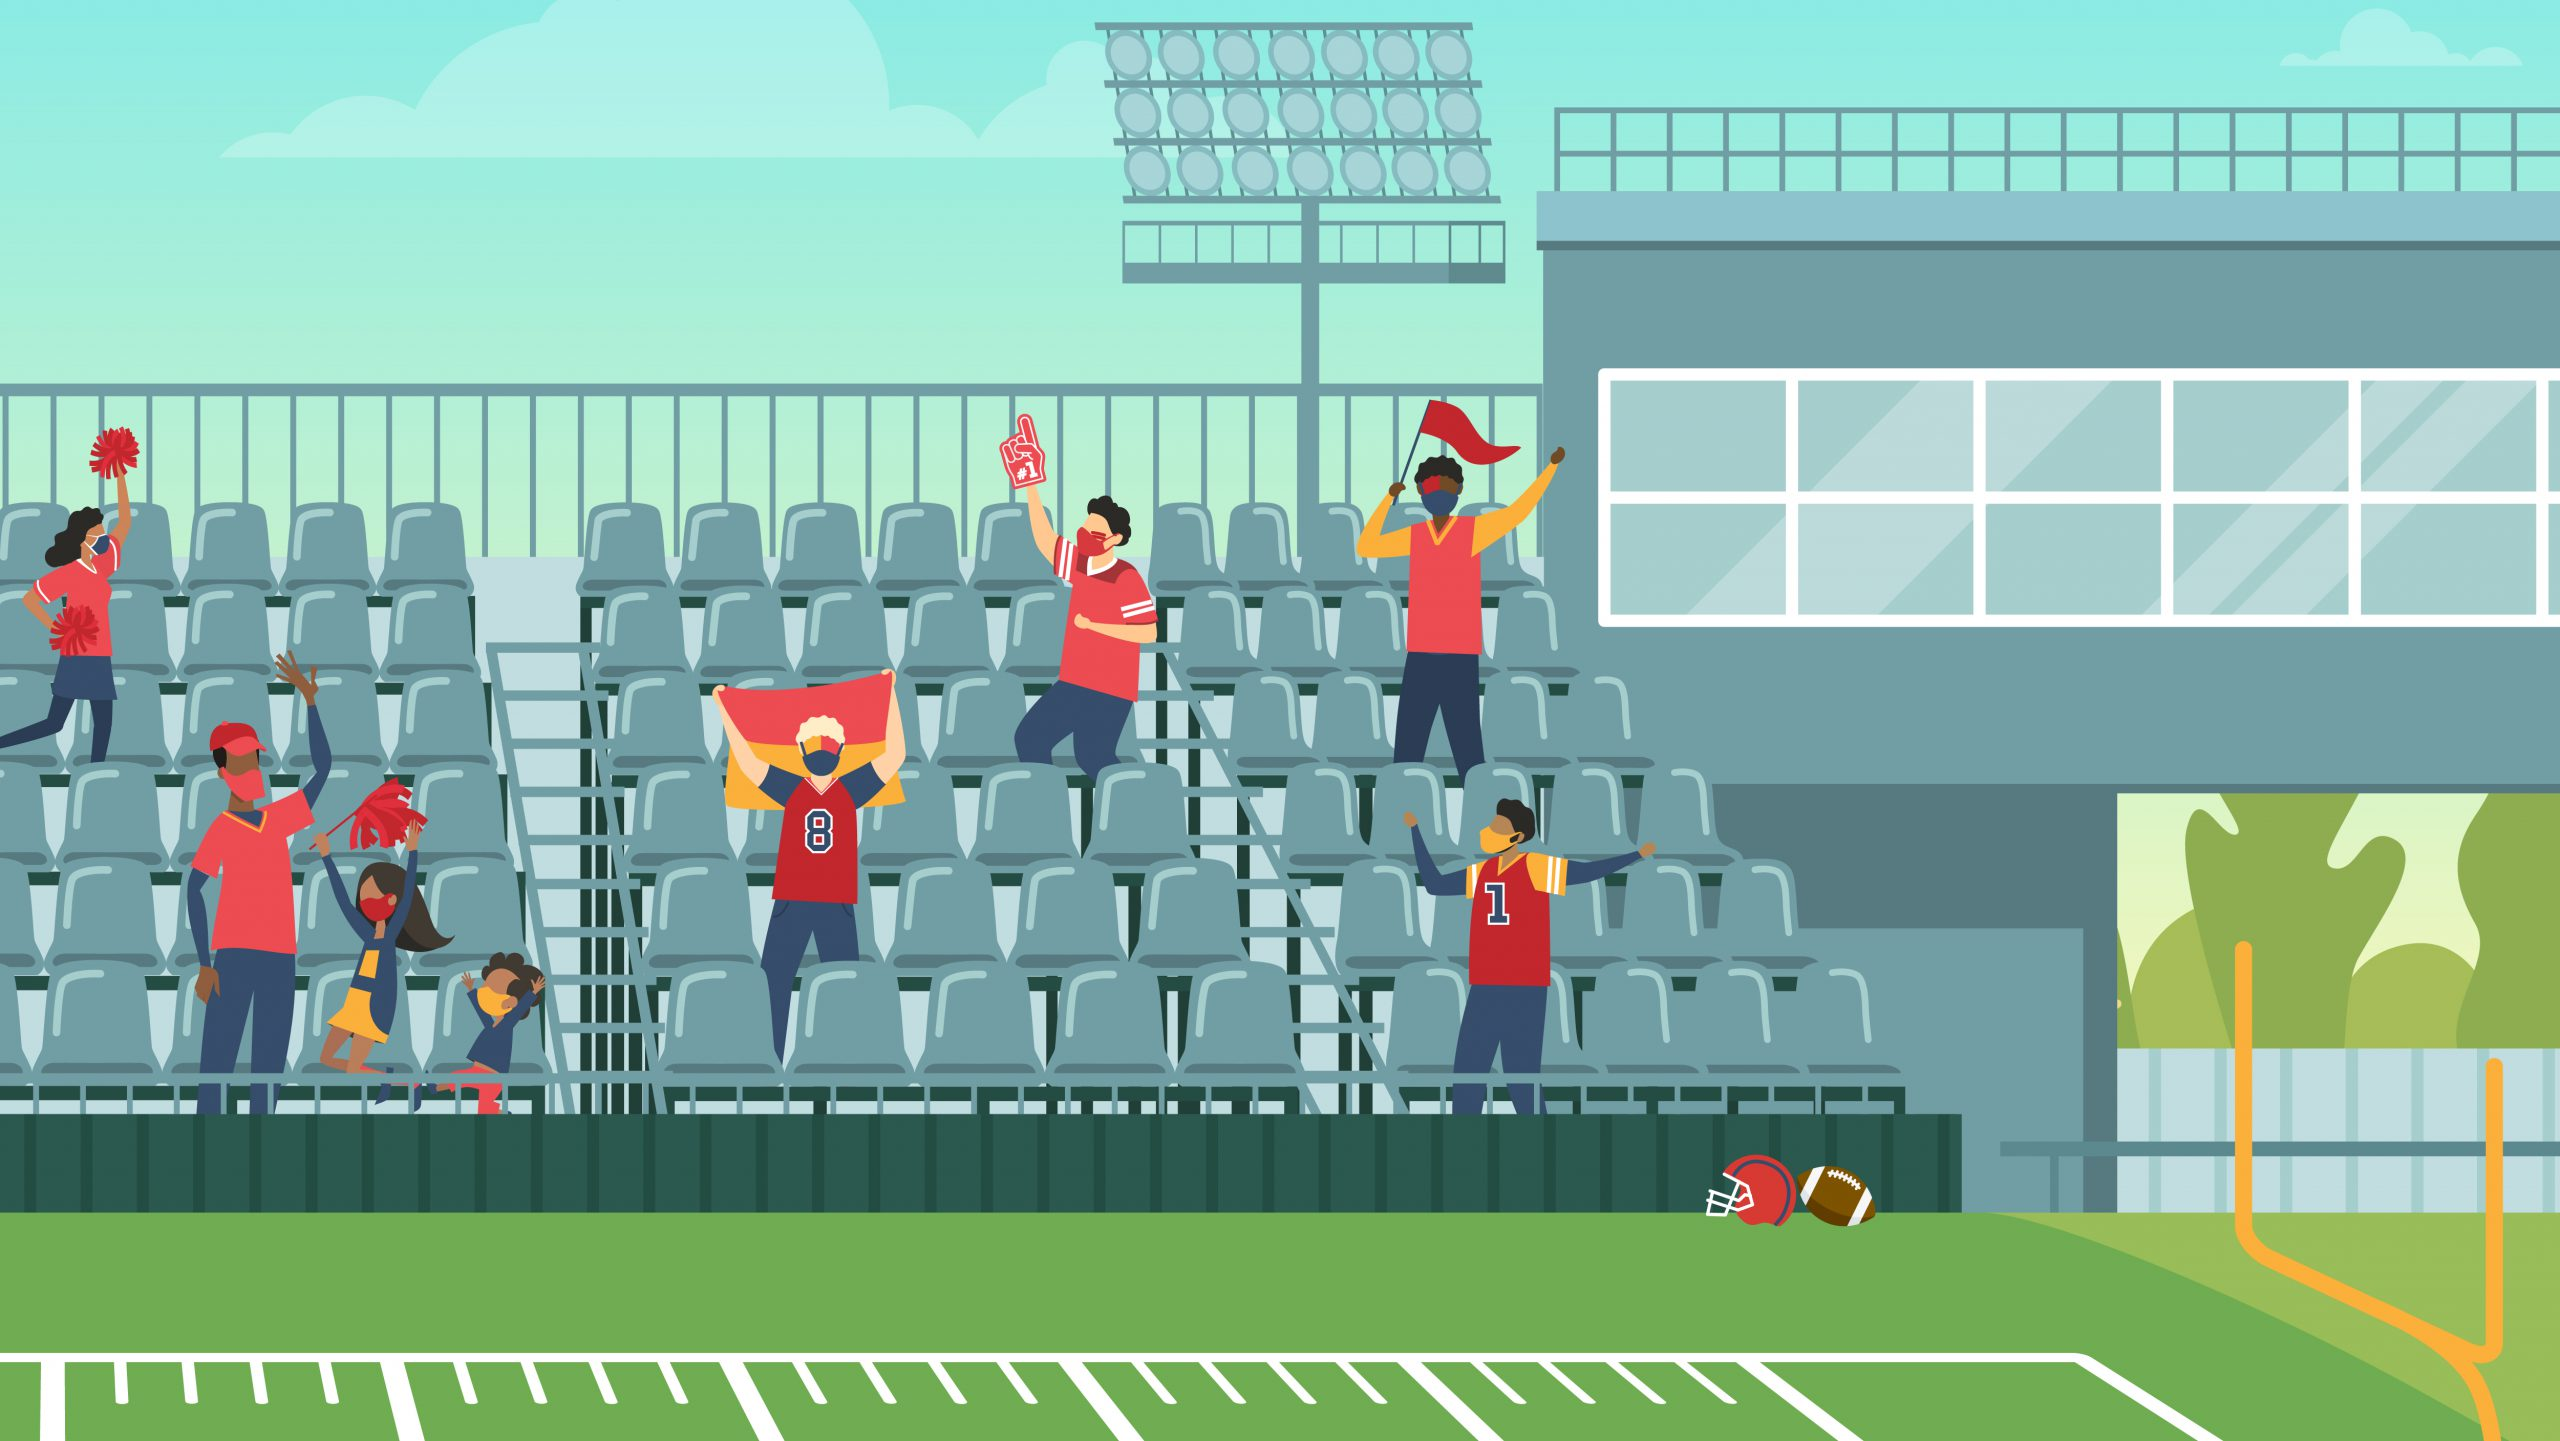 Image of people in a stadium cheering